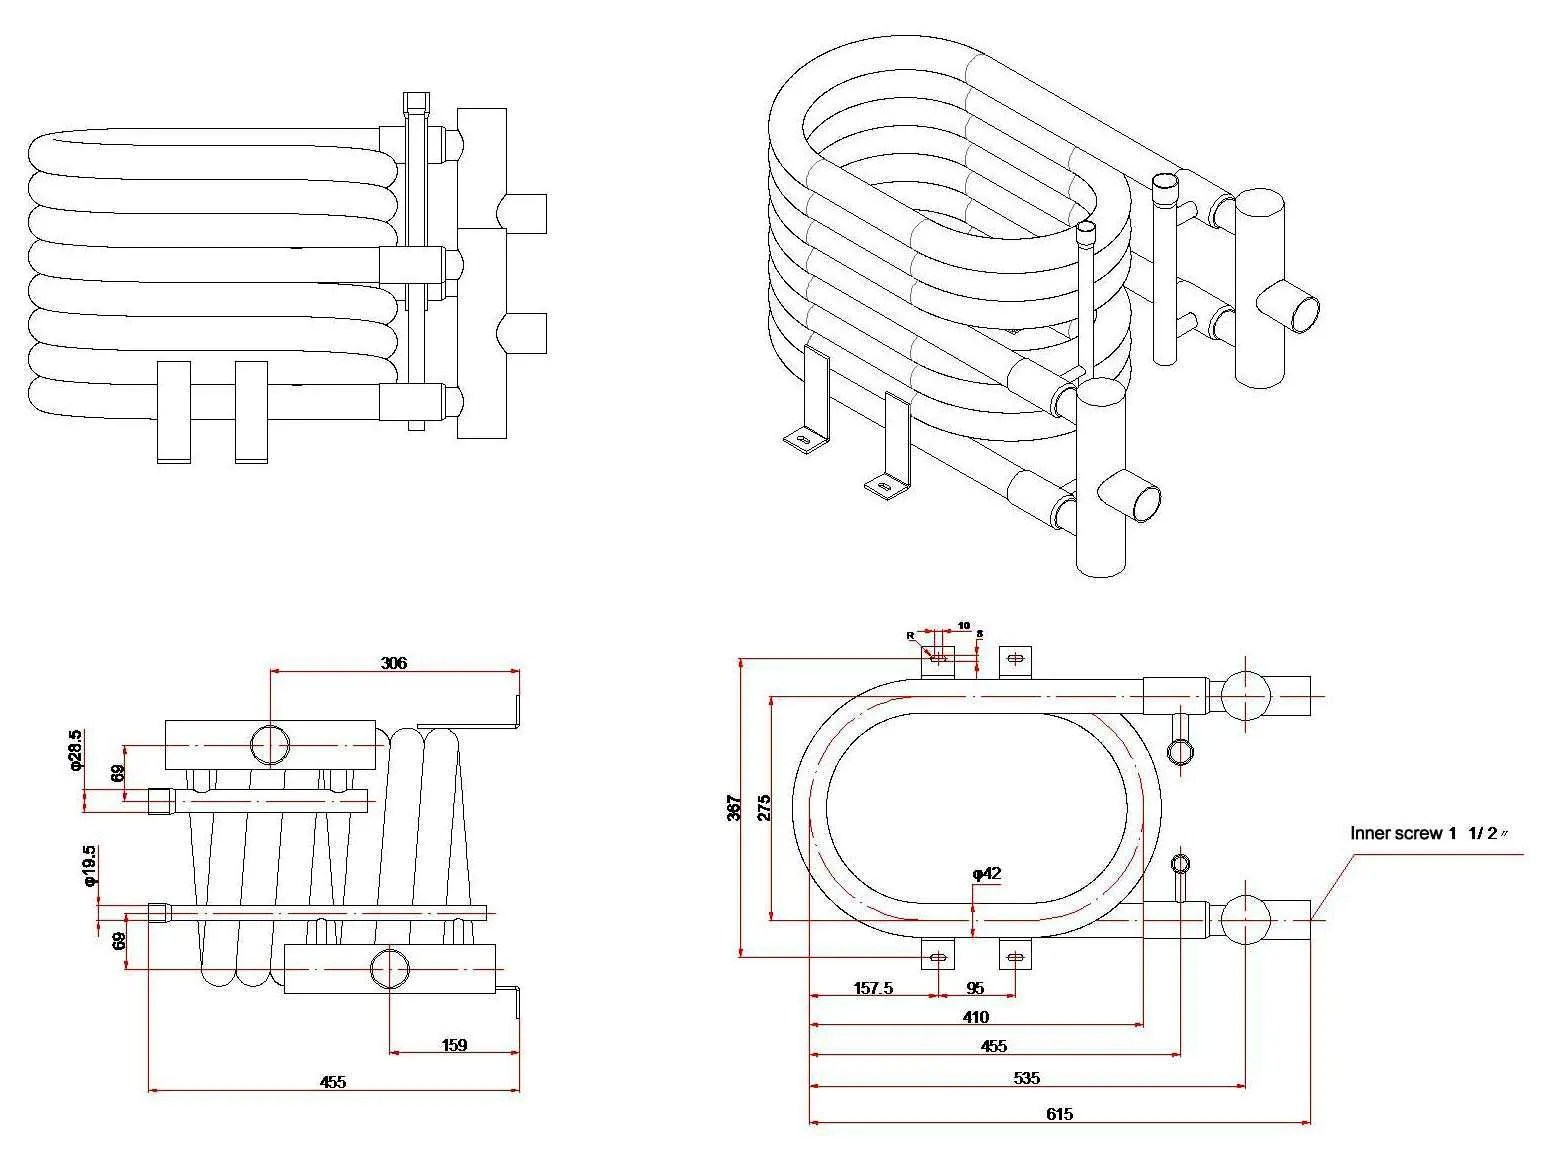 HVAC parts: Supply 7.5 ton Coaxial Condenser for marine,7